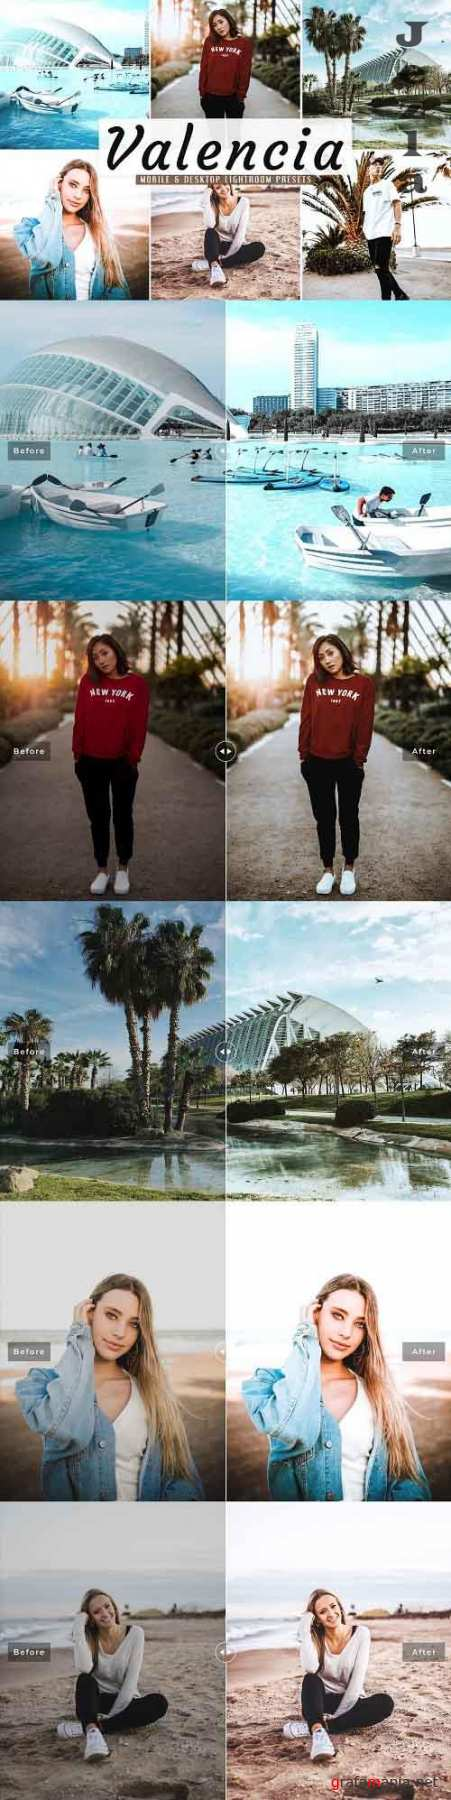 Valencia Pro Lightroom Presets - 5015711 - Mobile & Desktop